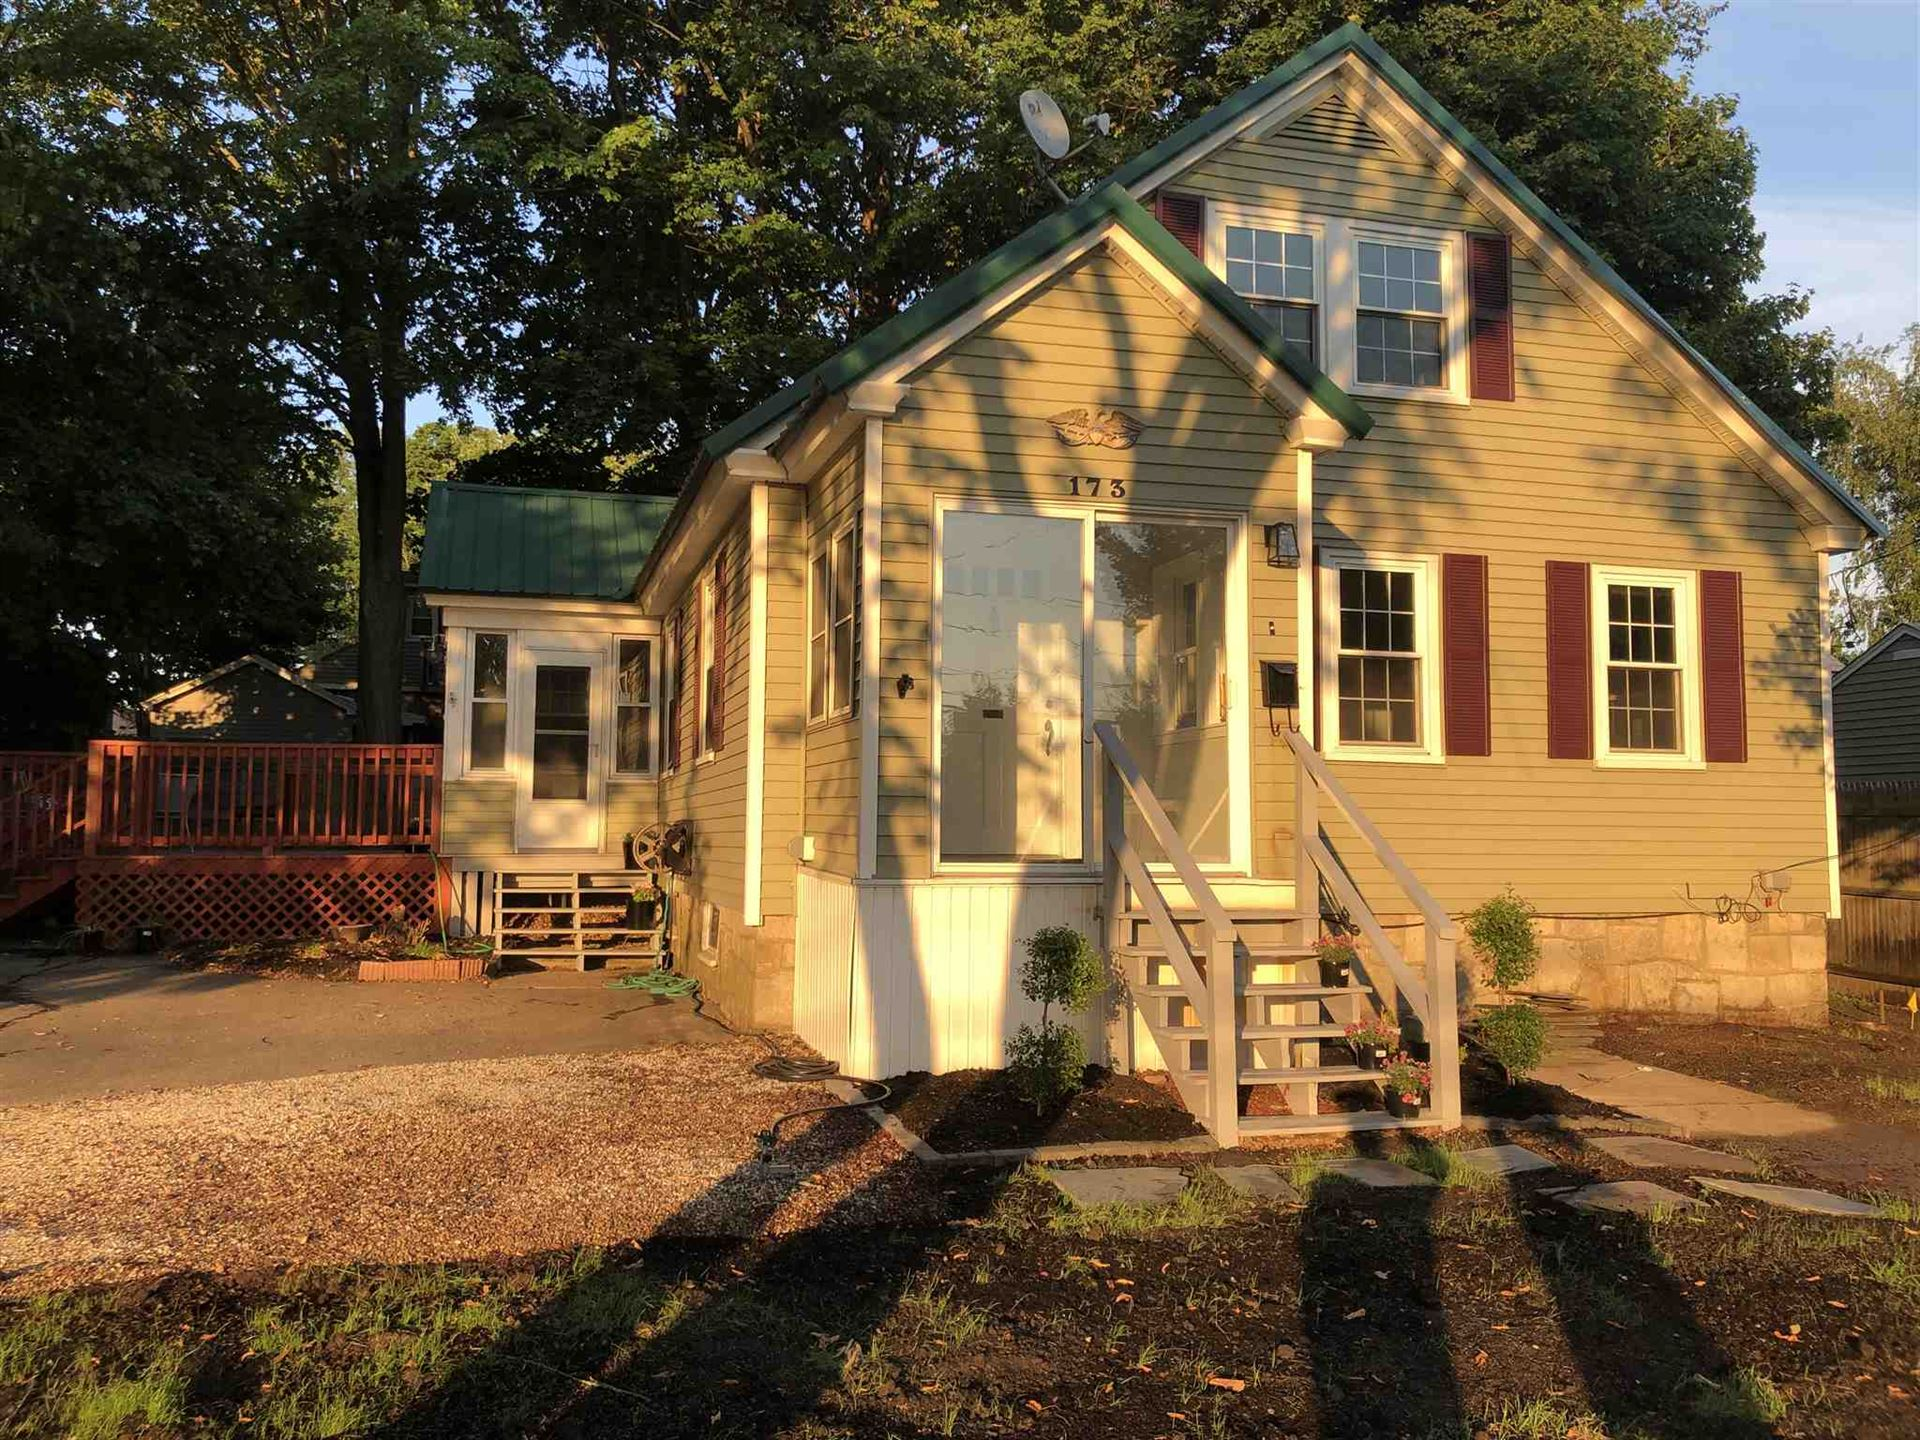 173  Mammoth Road, Manchester, NH 03109 - MLS#: 4822177